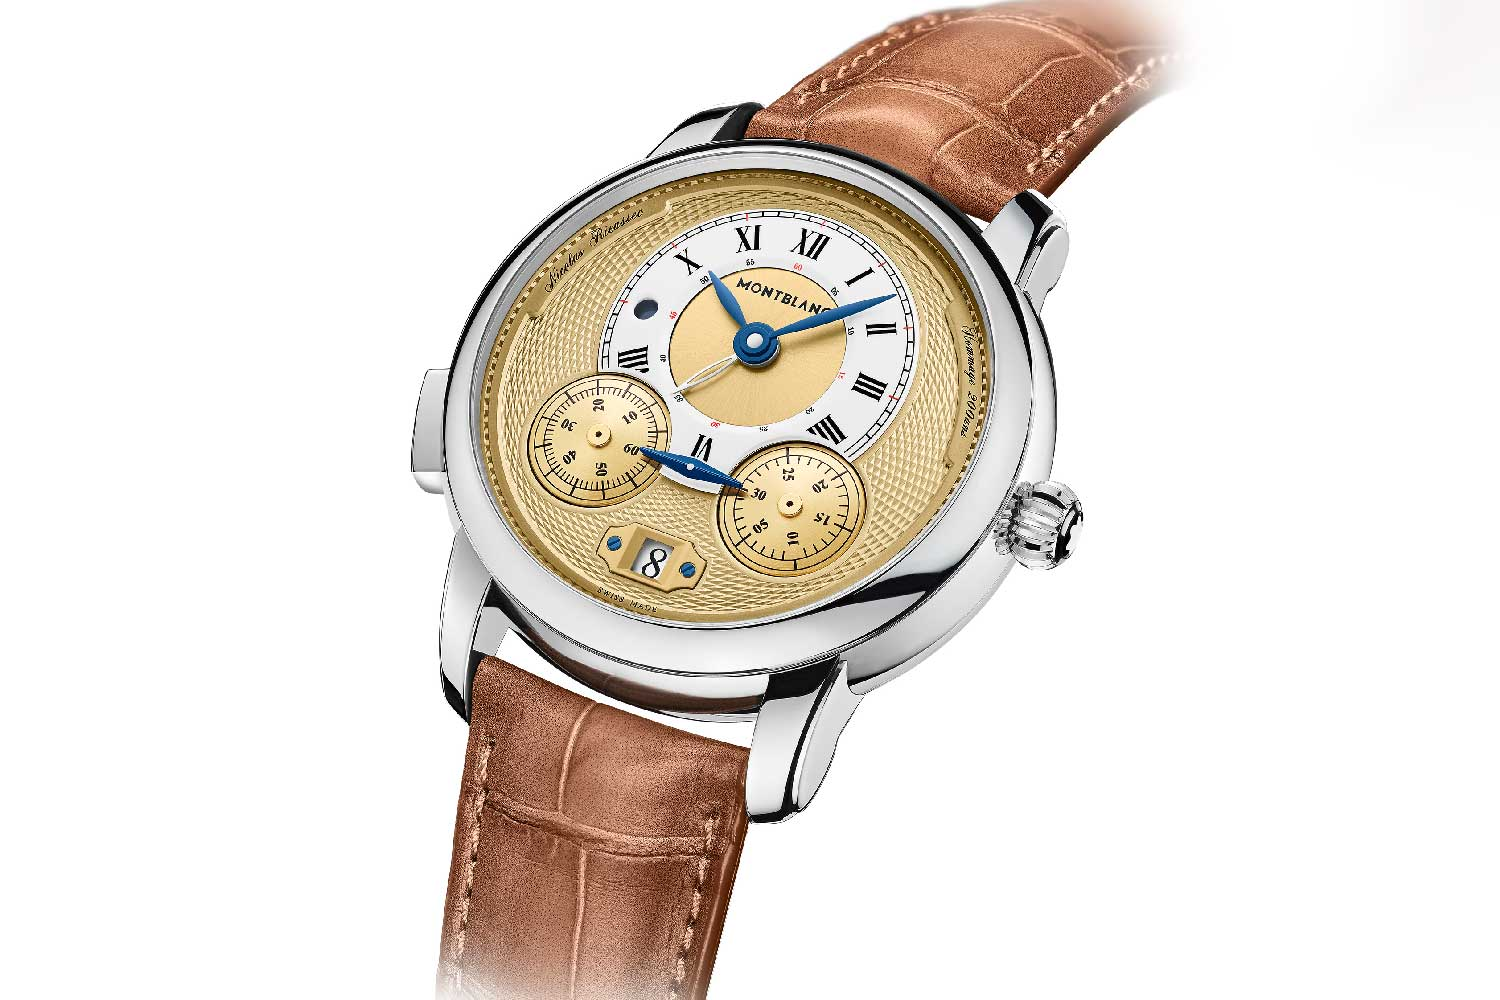 Echoing the design of the original chronograph, the Star Legacy Nicolas Rieussec Chronograph Limited Edition has two gold-coloured domed rotating chronograph discs, with 60-elapsed seconds on the left and 30-elapsed minutes on the right, displayed on the lower part of the dial.